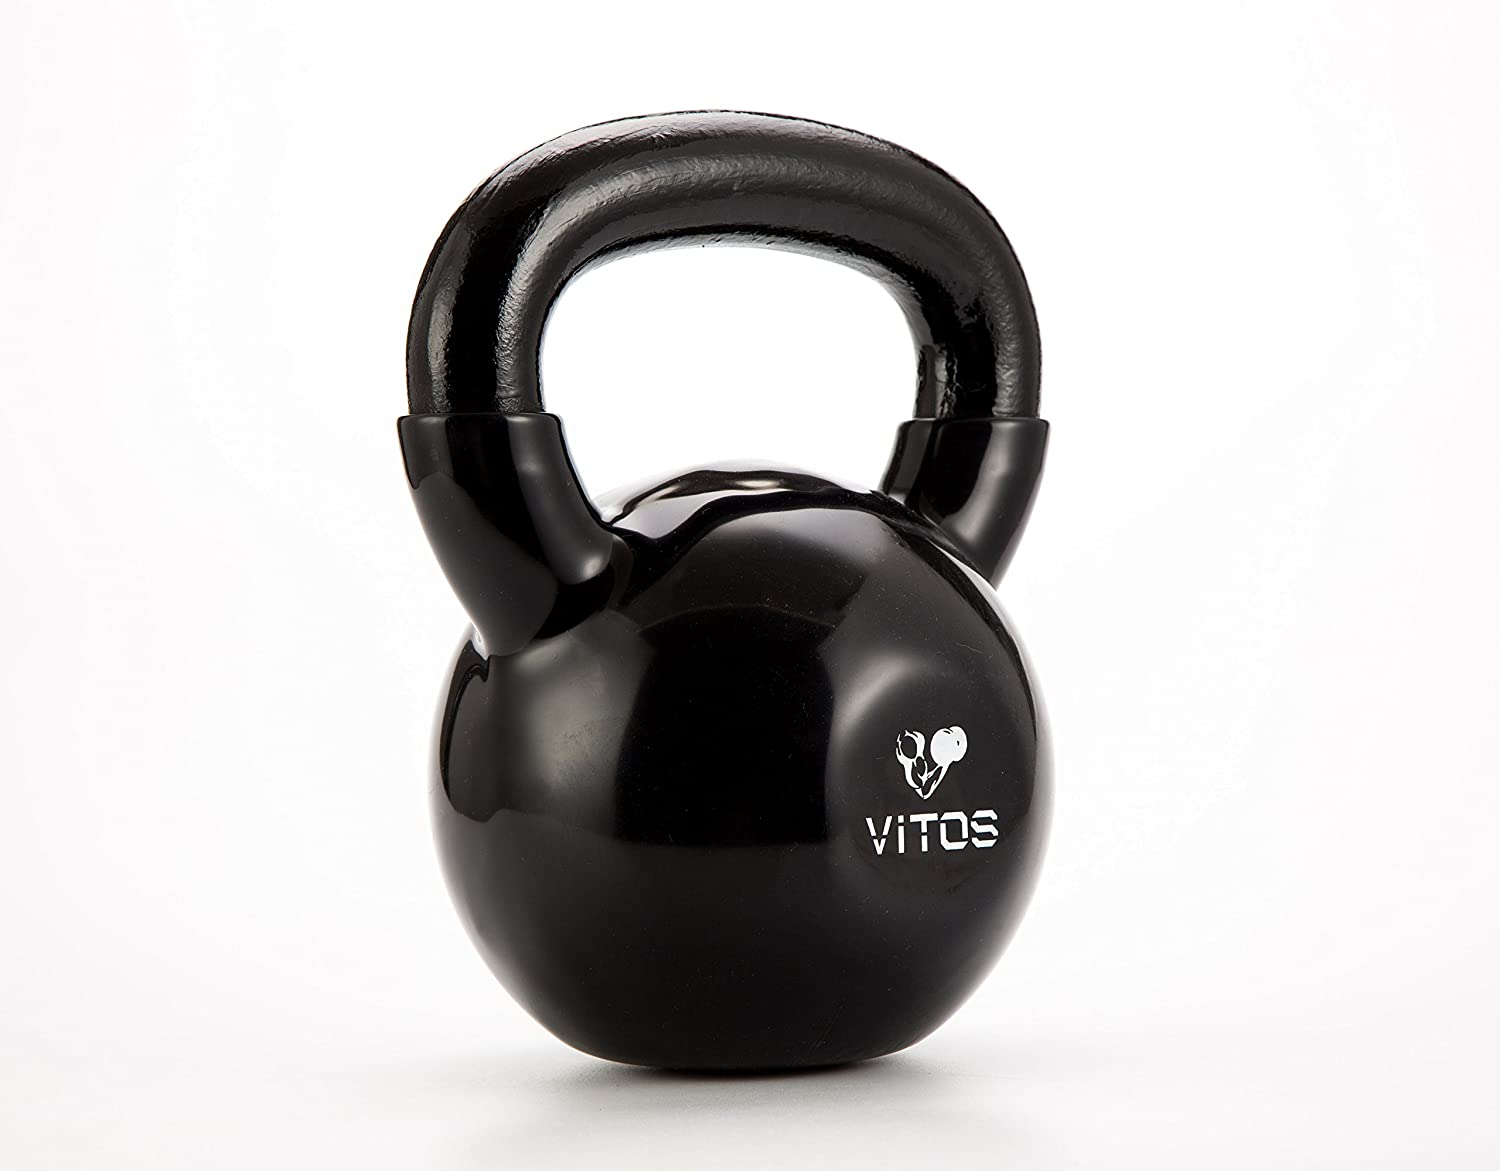 Vitos Fitness Vinyl Coated Kettlebell Weights Available from 5 to 50 LBs